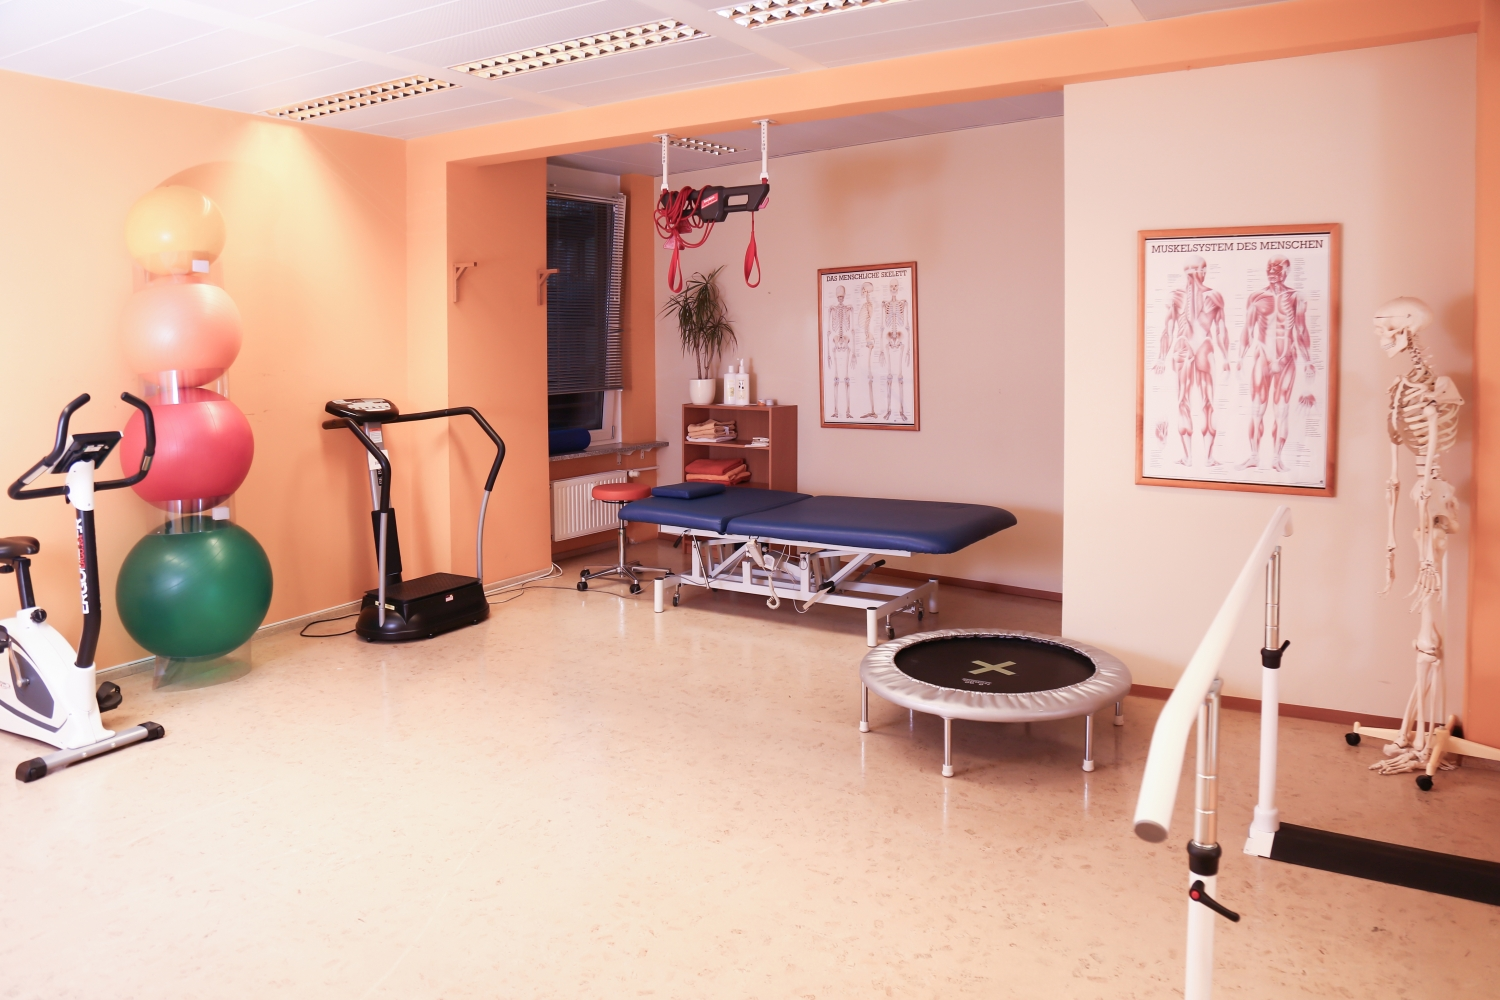 Physiotherapie in Berlin Mitte Aktivphysio e.V.